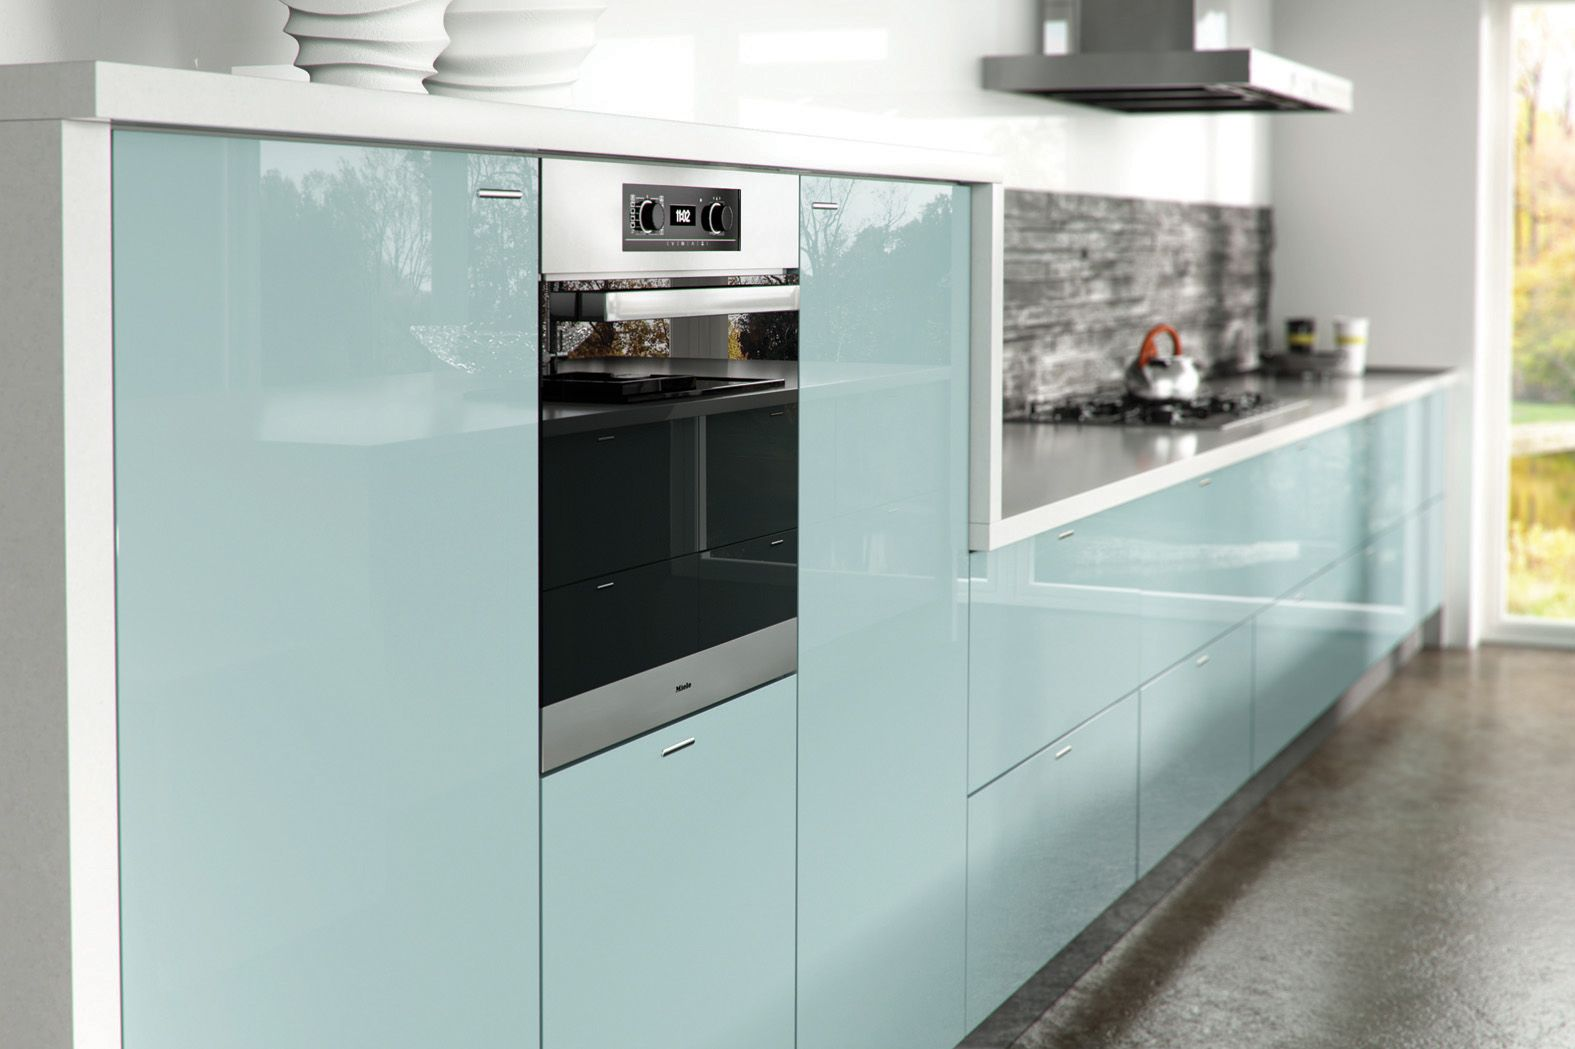 High Gloss Acrylic Kitchen Cabinets Grill Top Metallicblue Doors Great